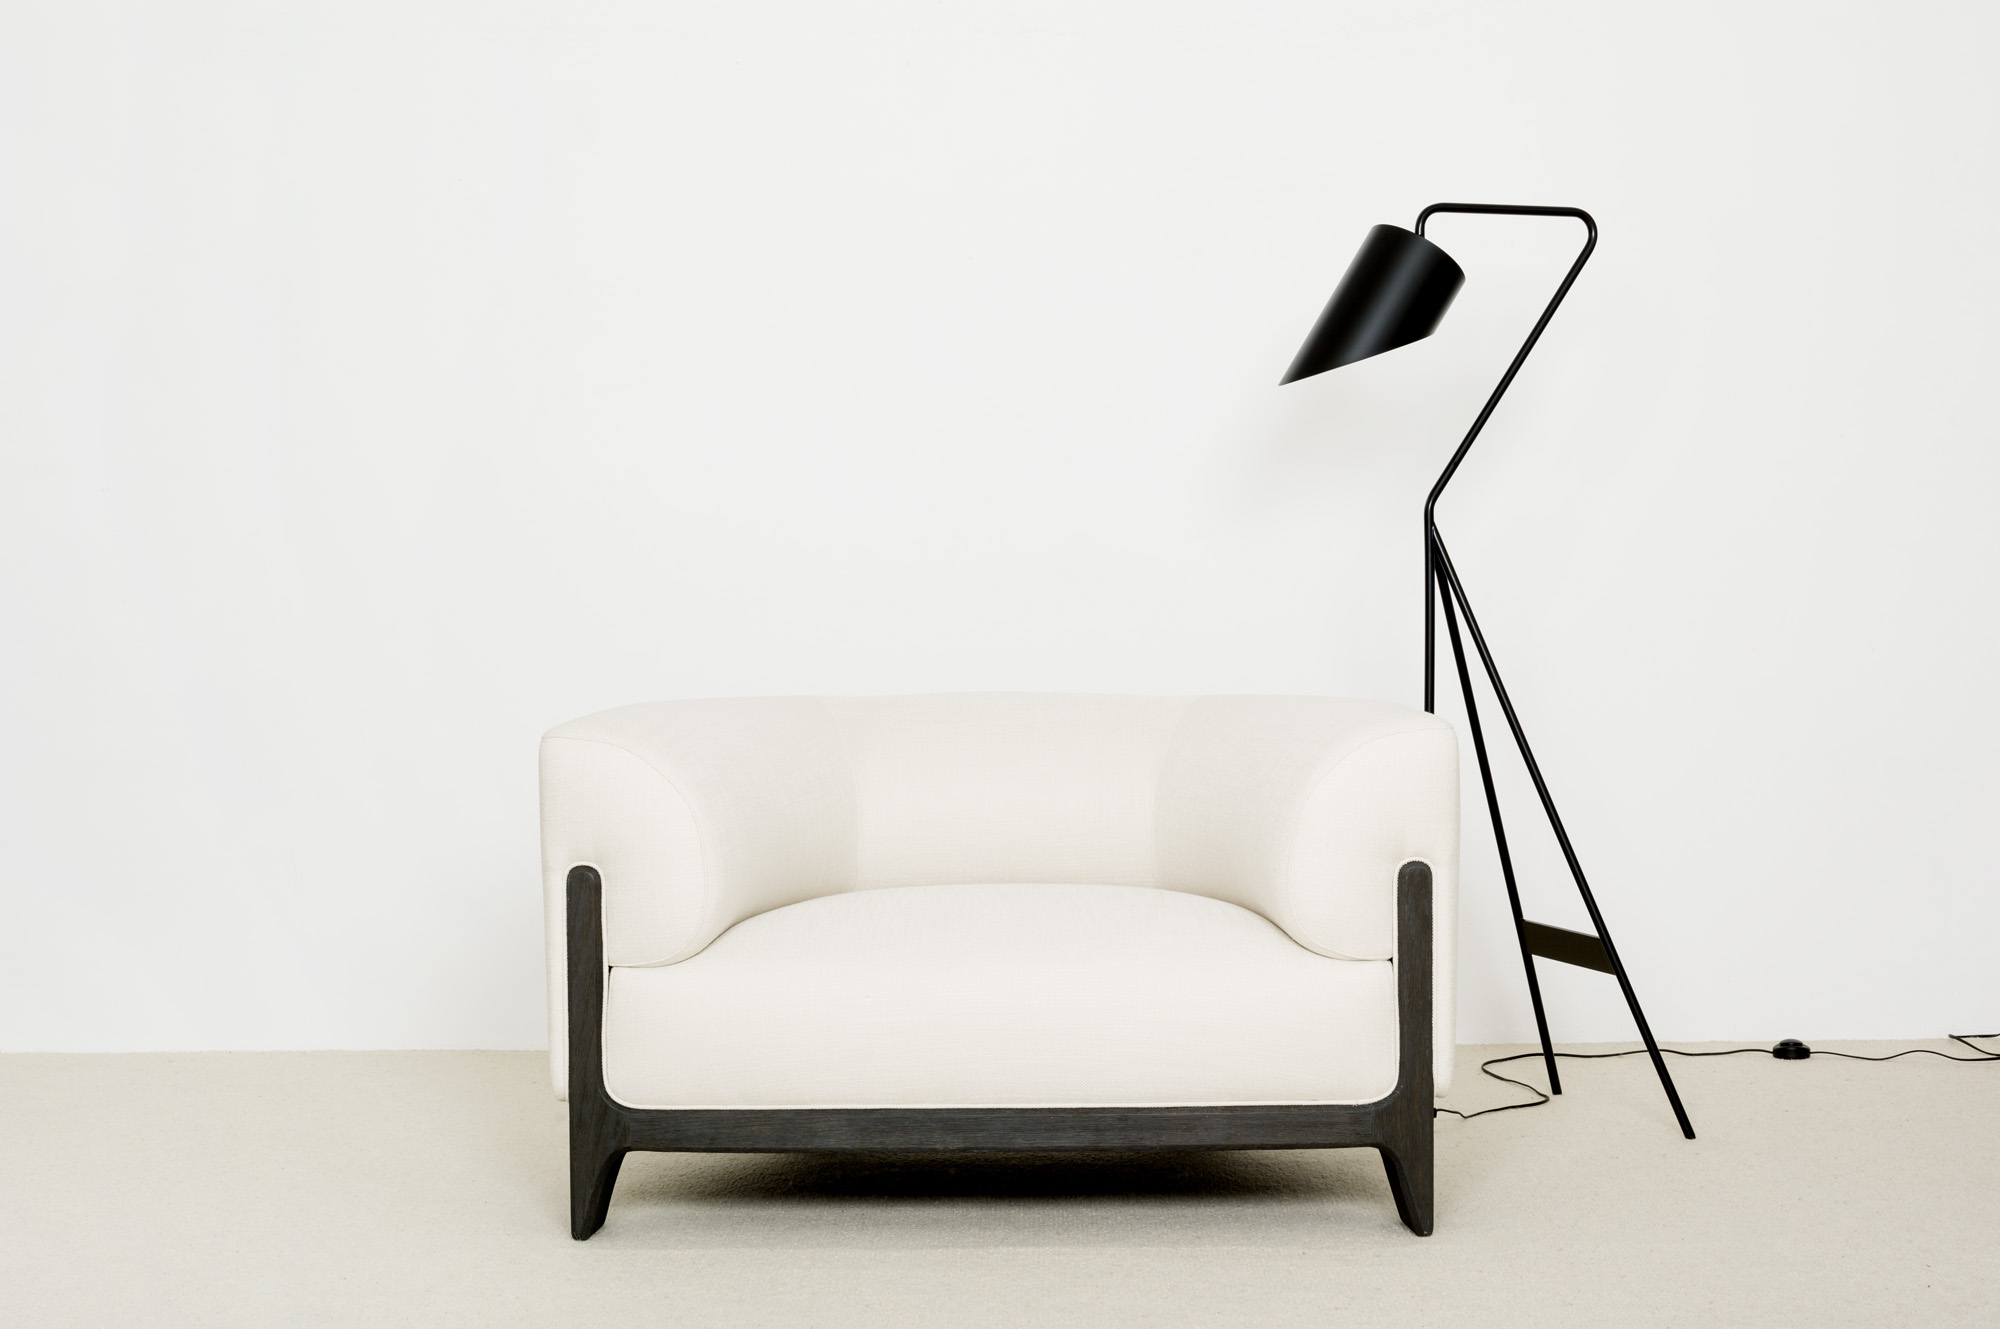 Swn Floor Lamp Bob Armchair - Christophe Delcourt